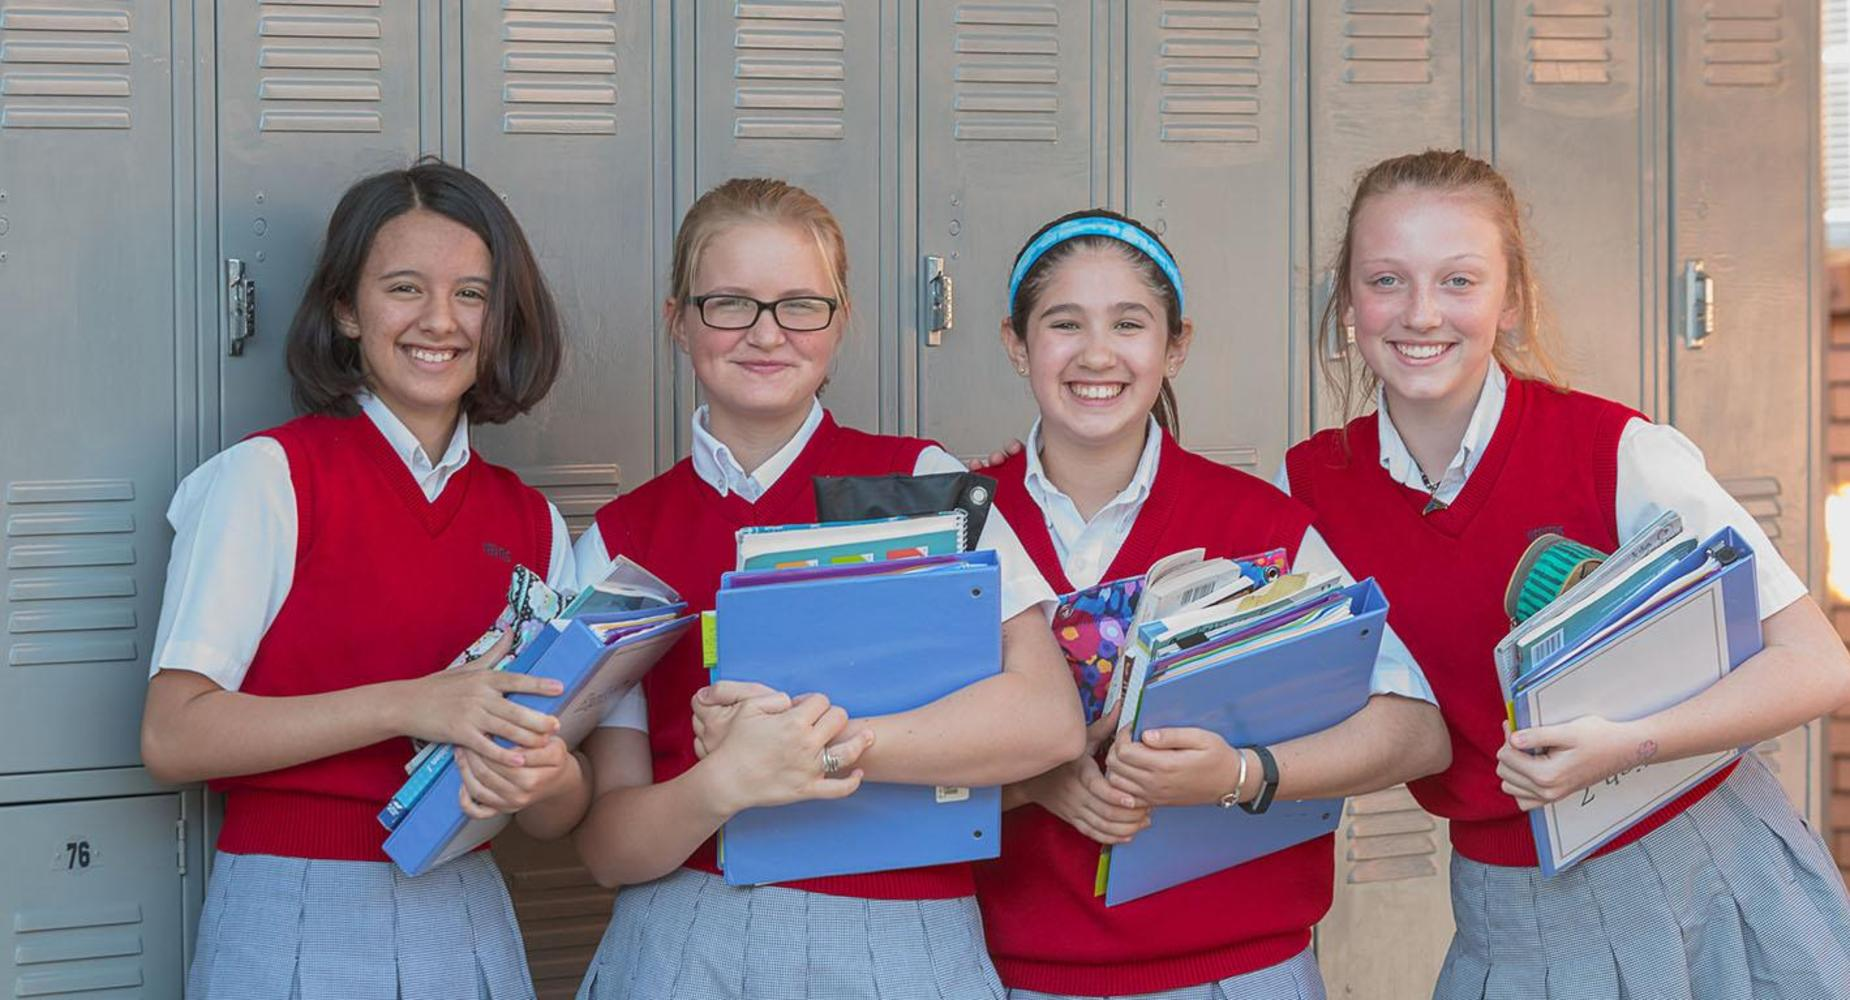 Group of students pose in front of their lockers